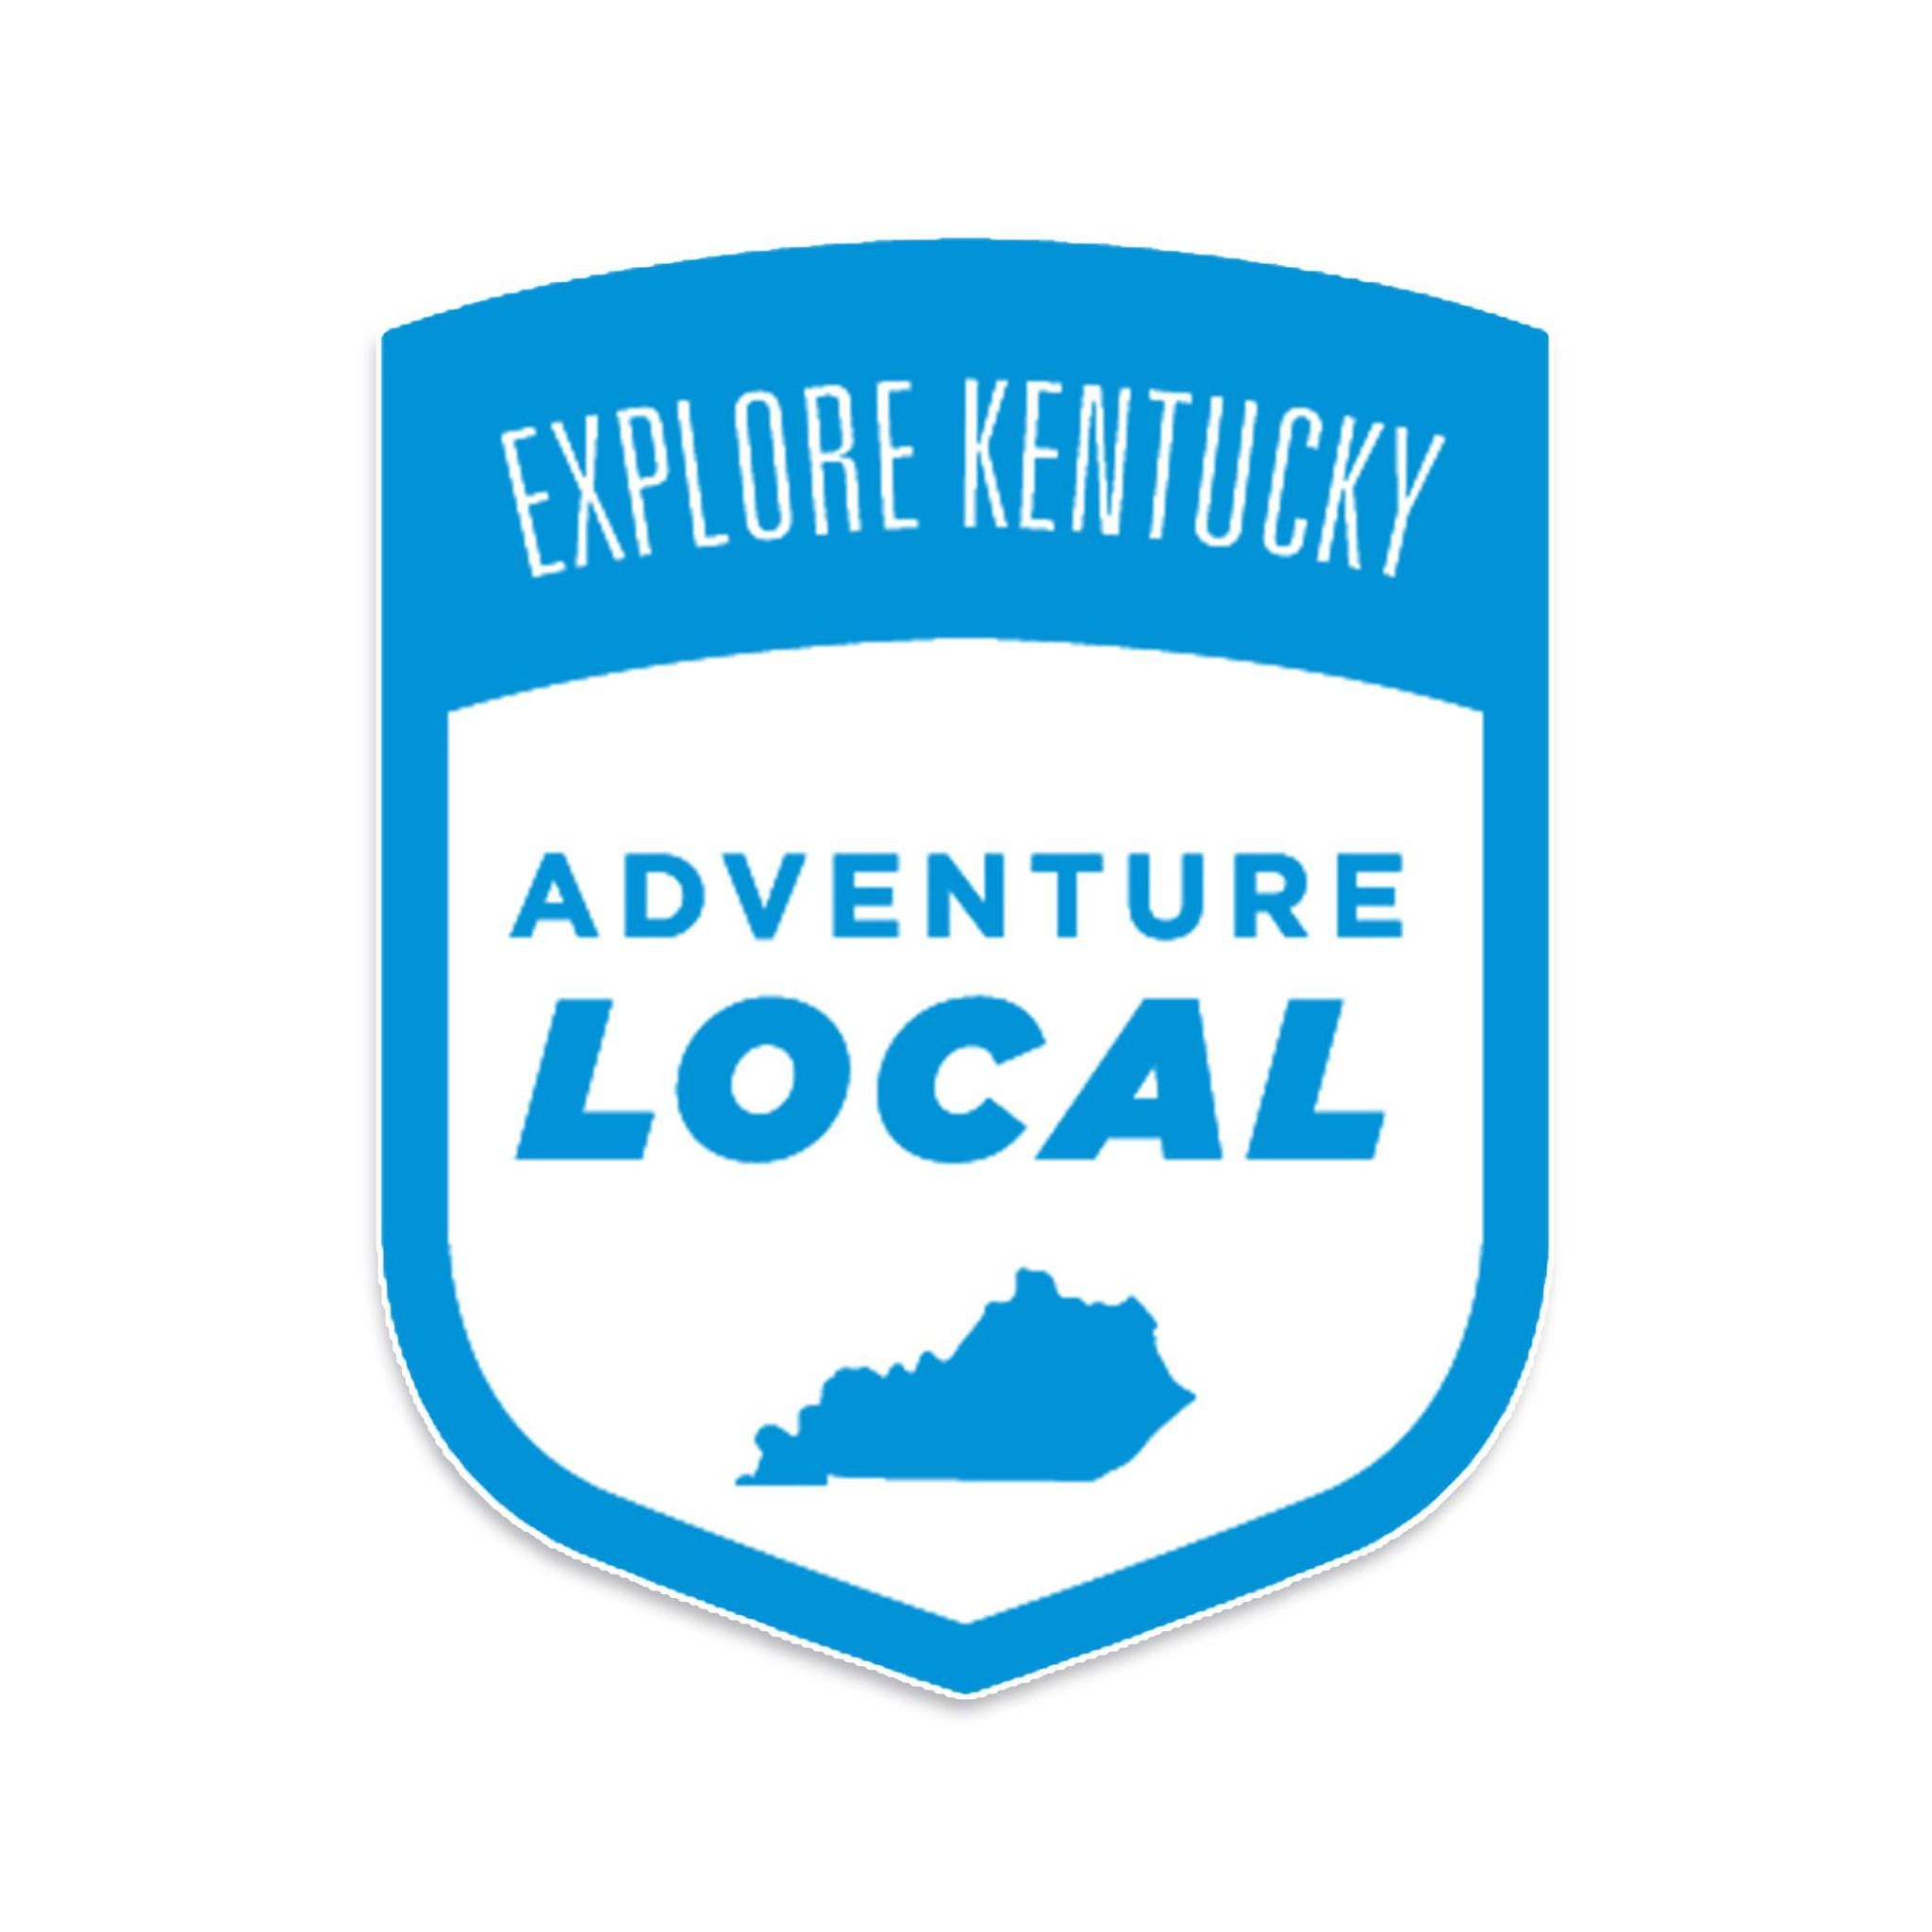 Explore Kentucky's Adventure Local Sticker (Blue)-Stickers-KY for KY Store